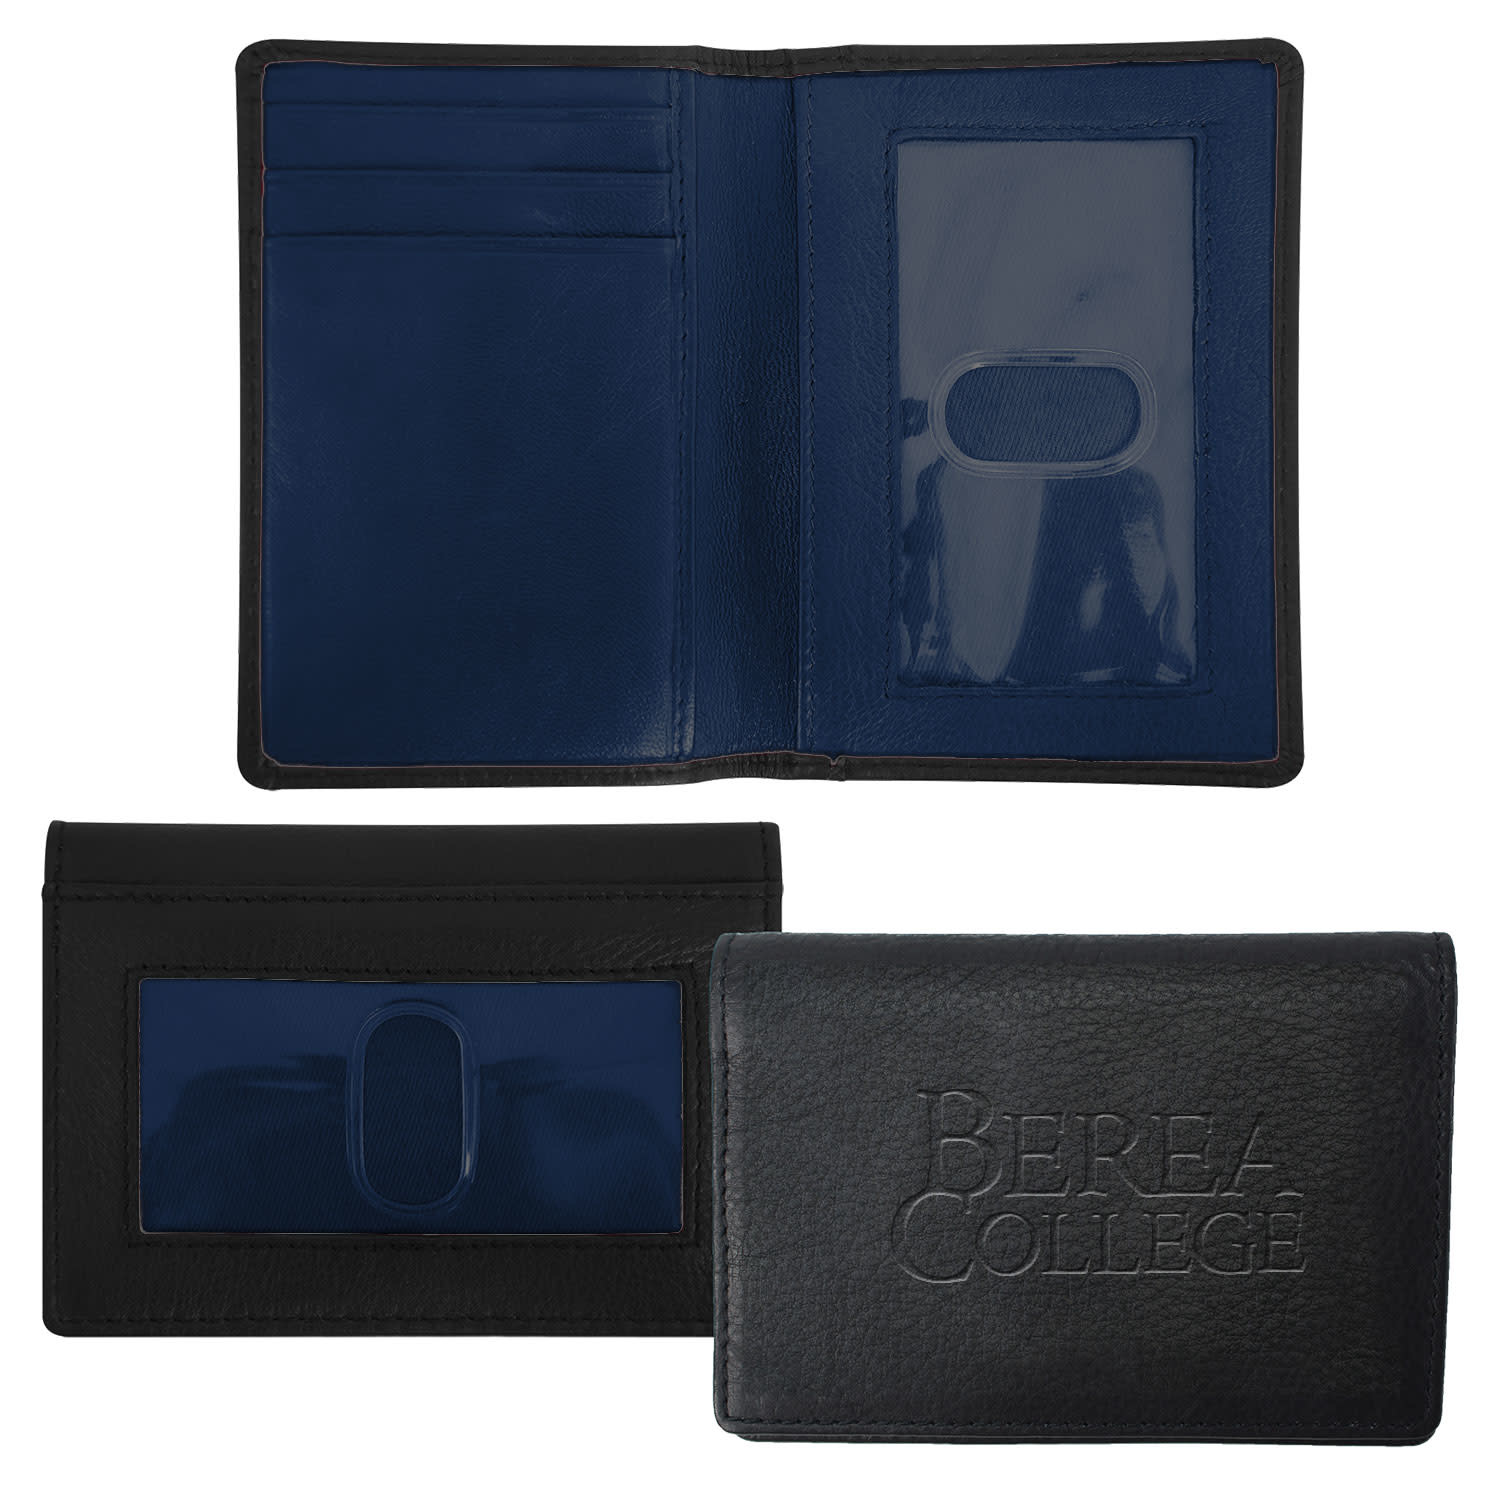 Black/Navy Wallet Berea college ID Holder-1